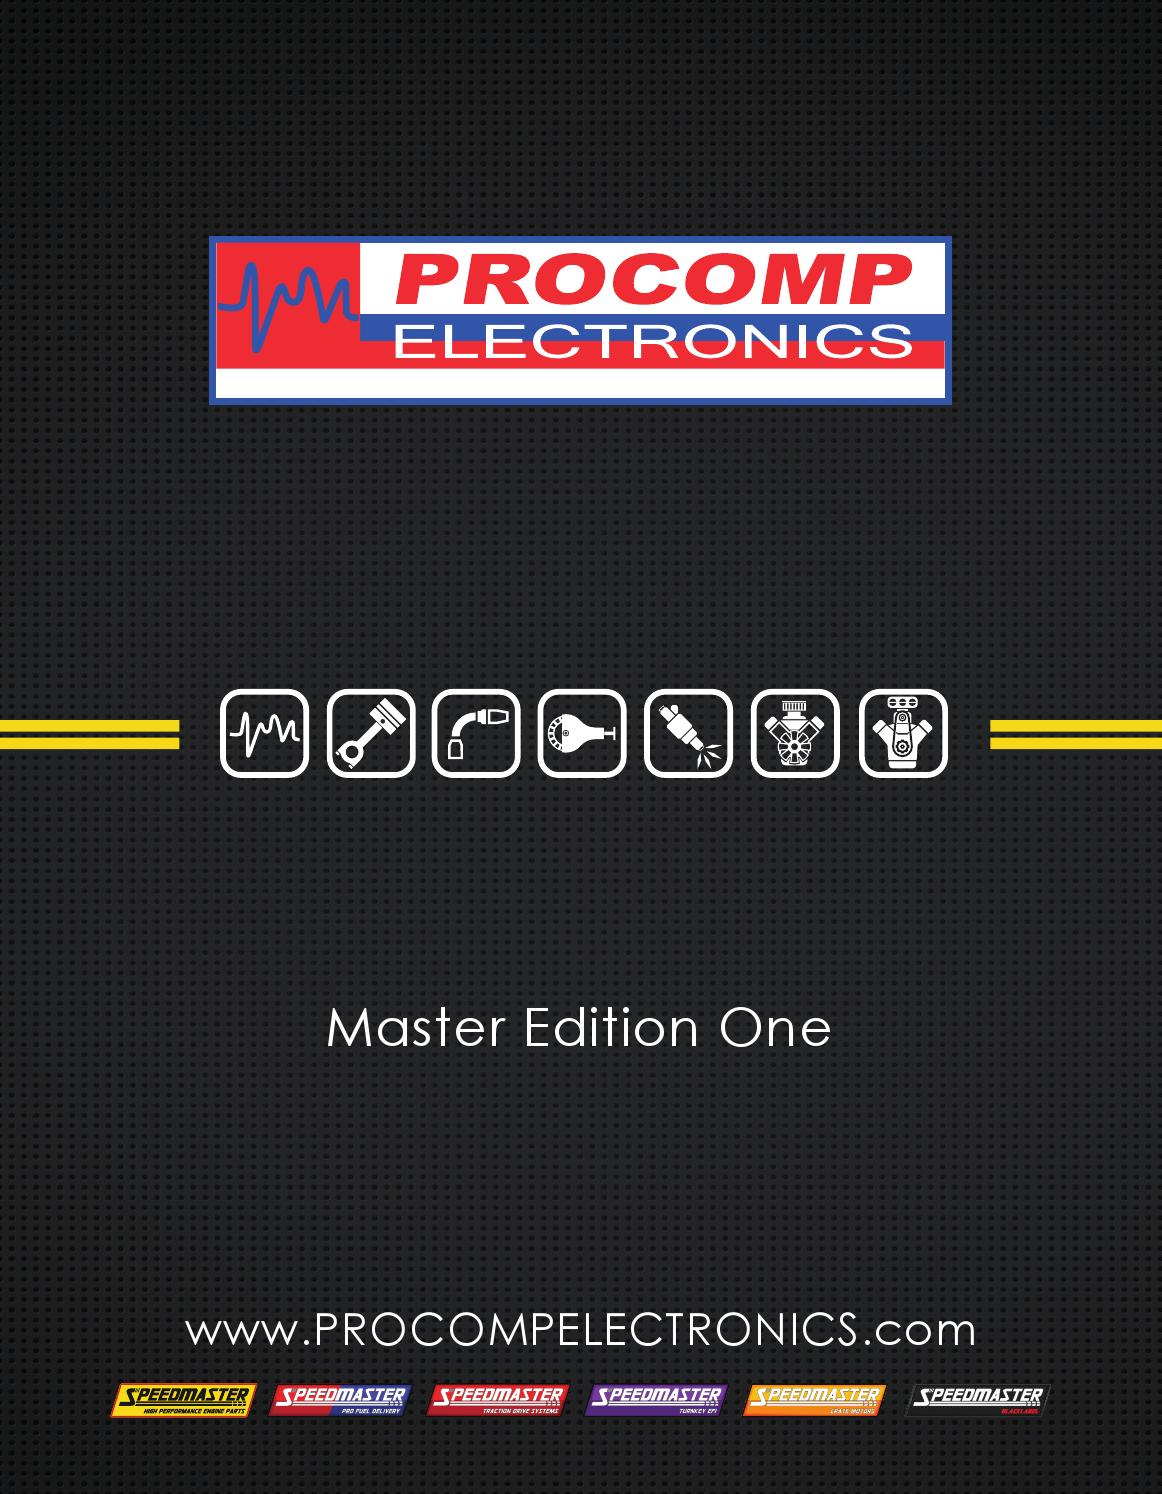 hight resolution of procomp electronics catalog master edition one by studio eightysix issuu